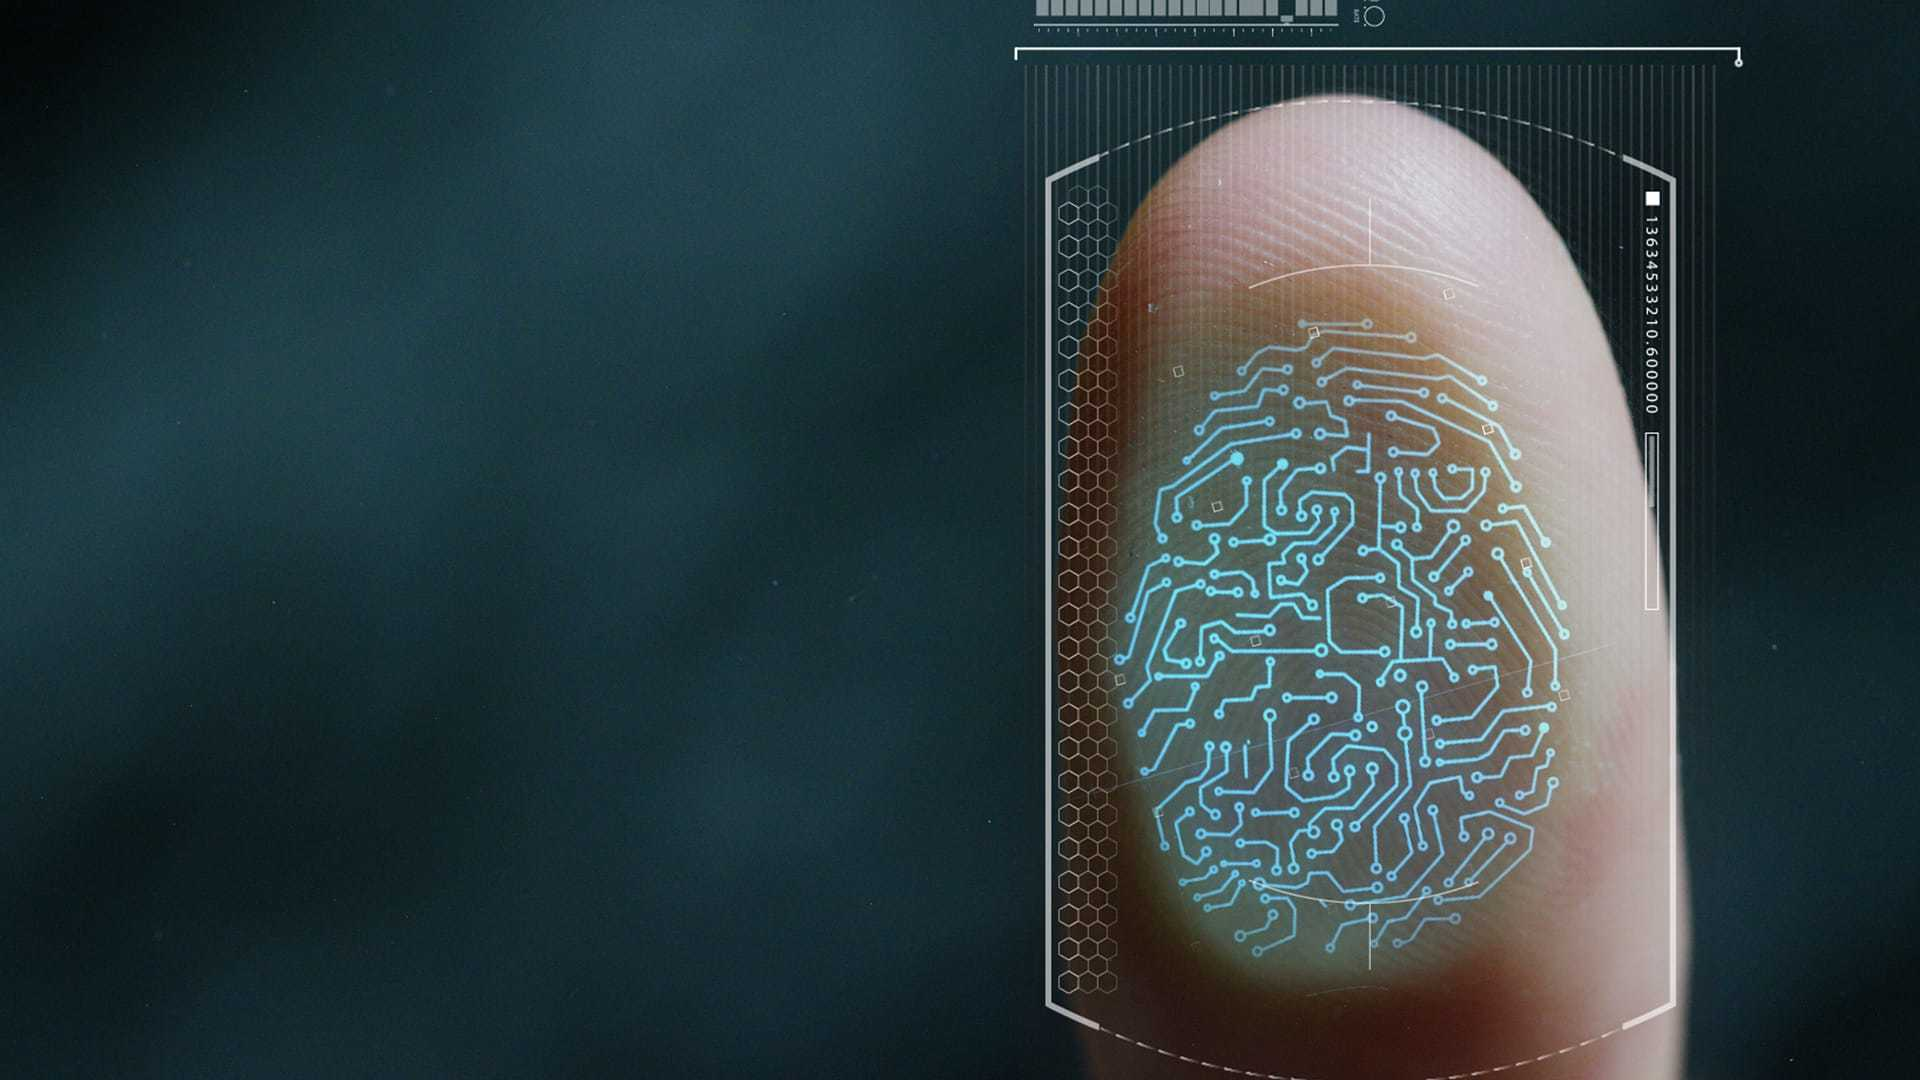 biometrics and digital identity in developing nations